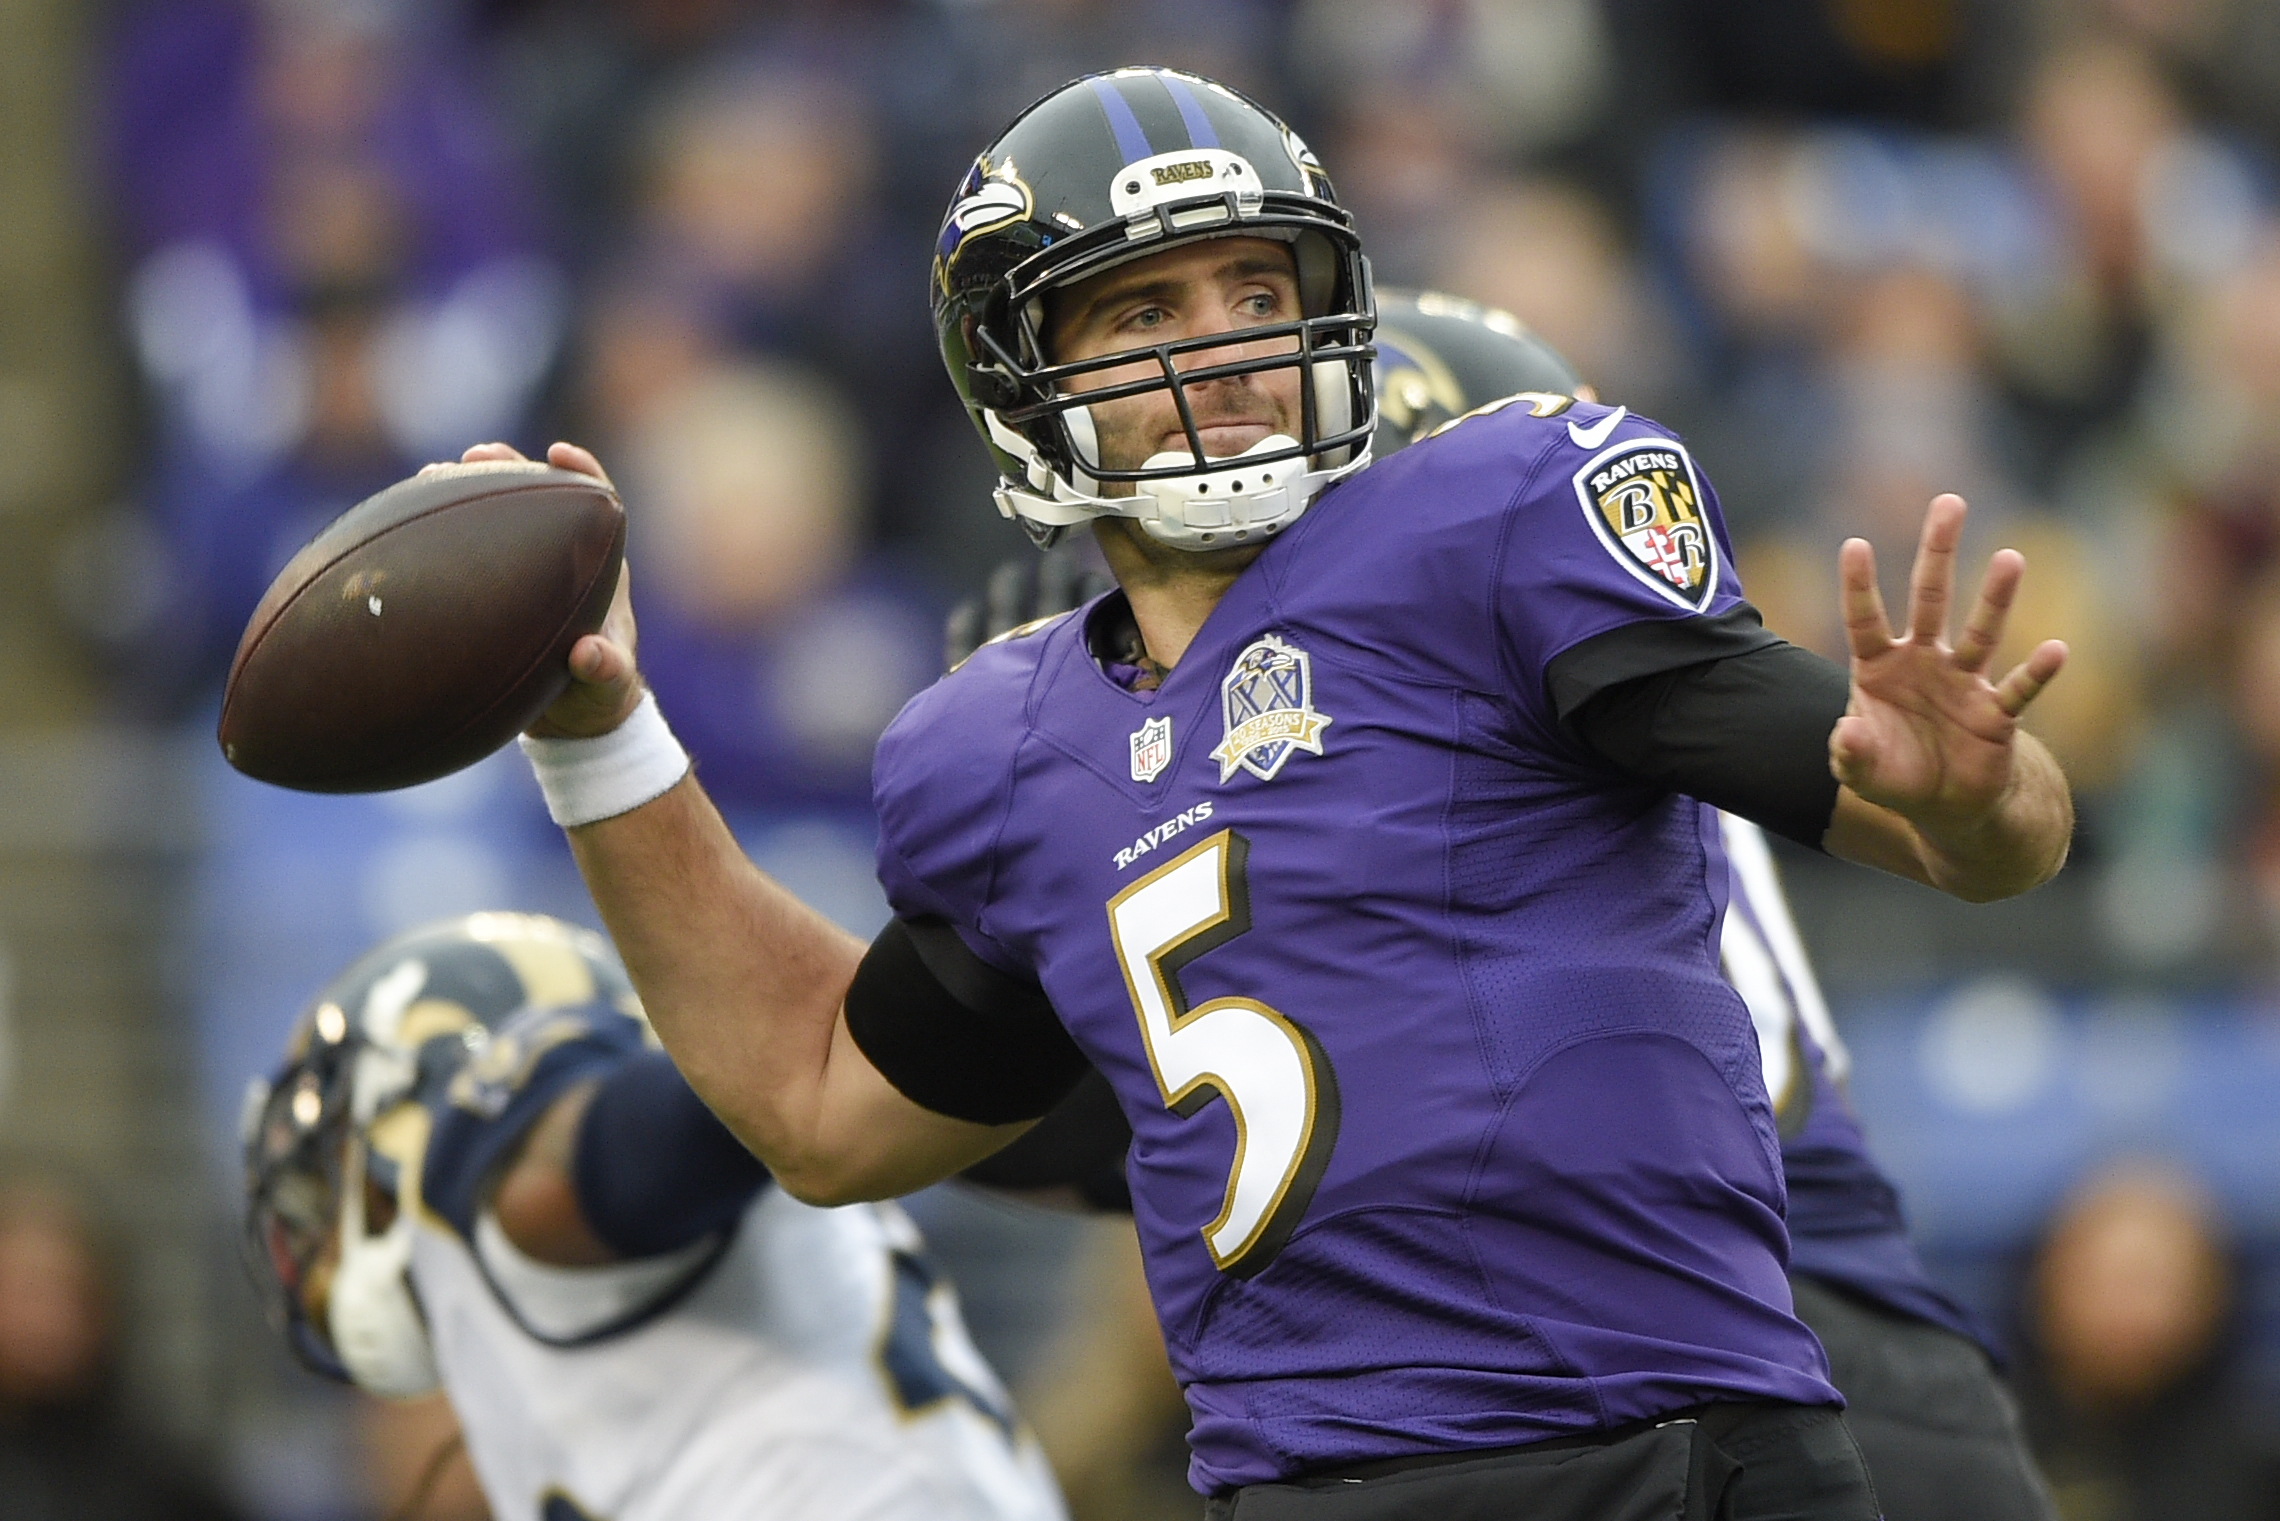 Baltimore Ravens quarterback Joe Flacco (5) passes the ball during the second half of an NFL football game against the St. Louis Rams in Baltimore, Sunday, Nov. 22, 2015. (AP Photo/Nick Wass)